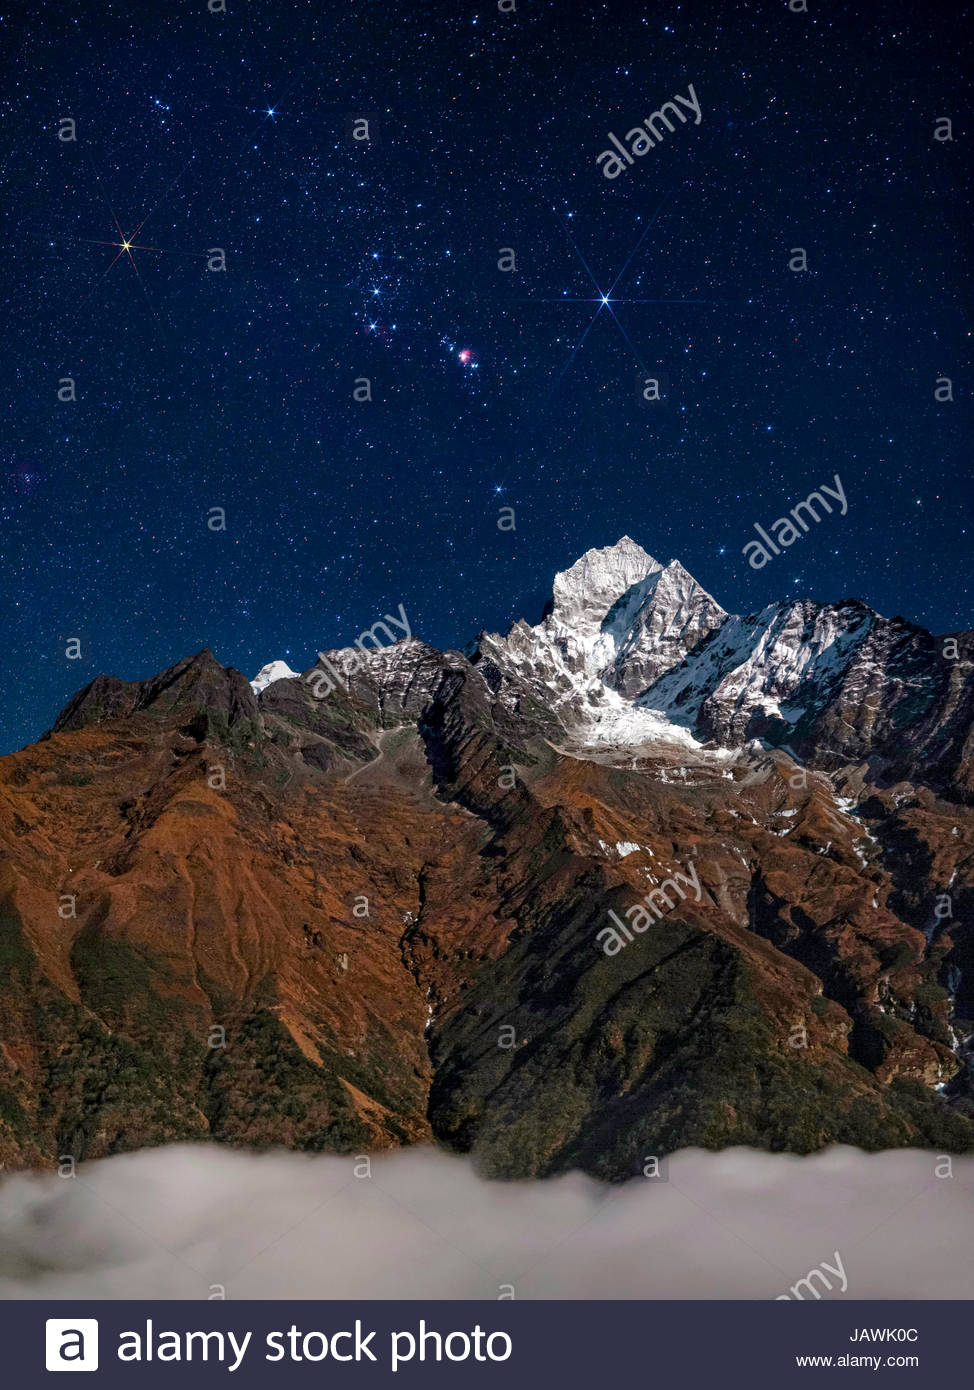 Constellation of Orion, rises above Himalayas in the Sagarmatha National Park of Nepal. - Stock Image